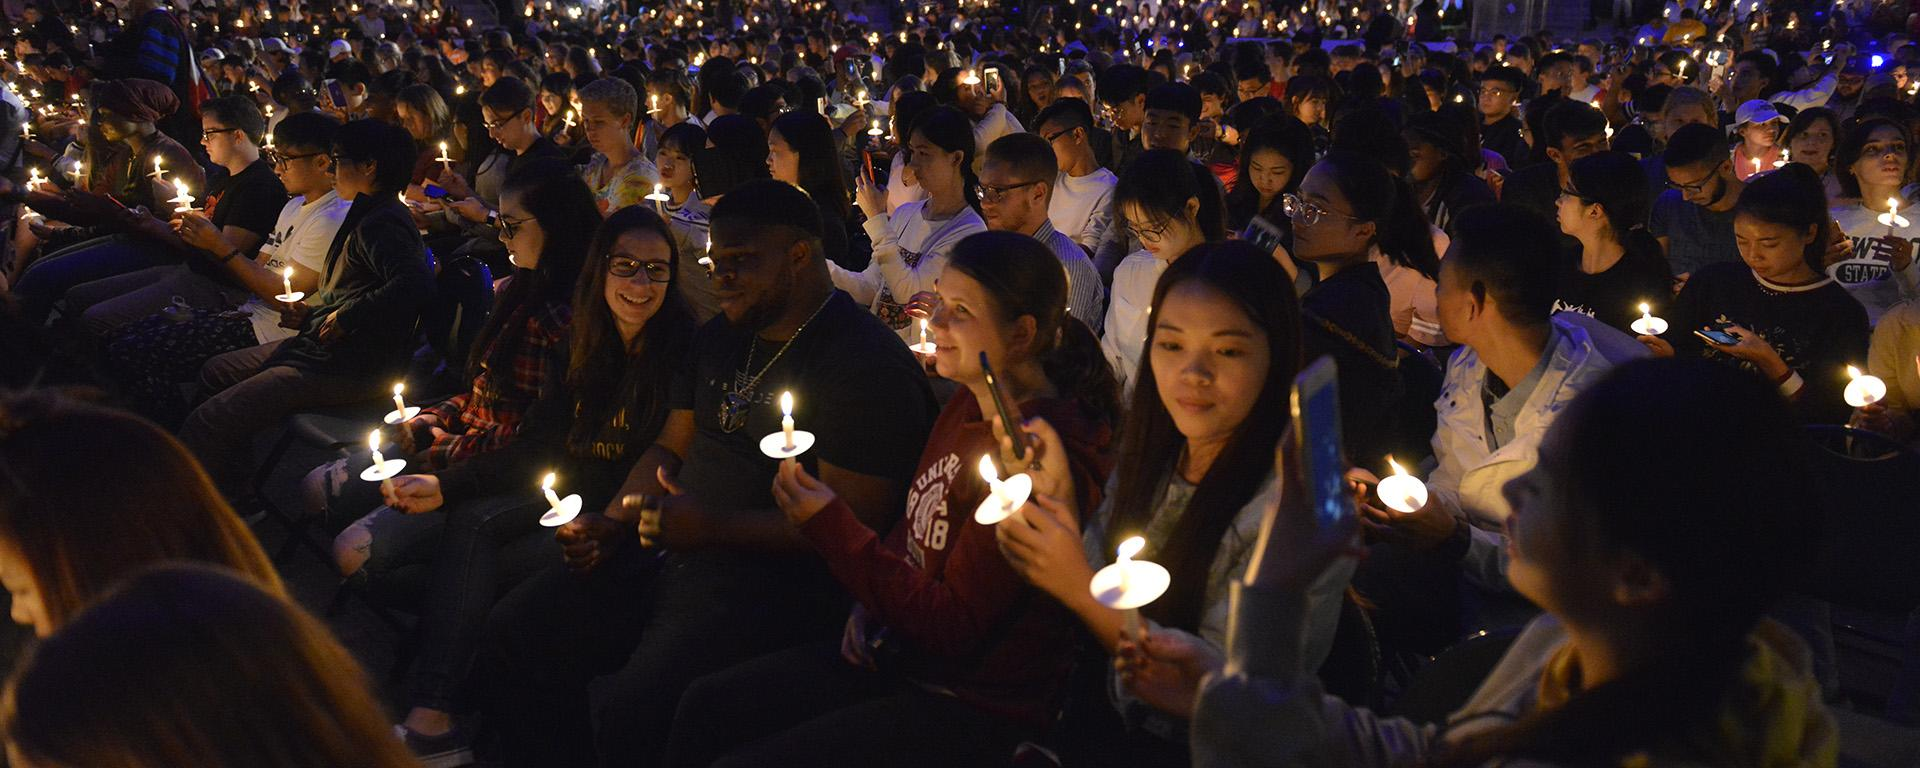 Students hold up candles during Torchlight